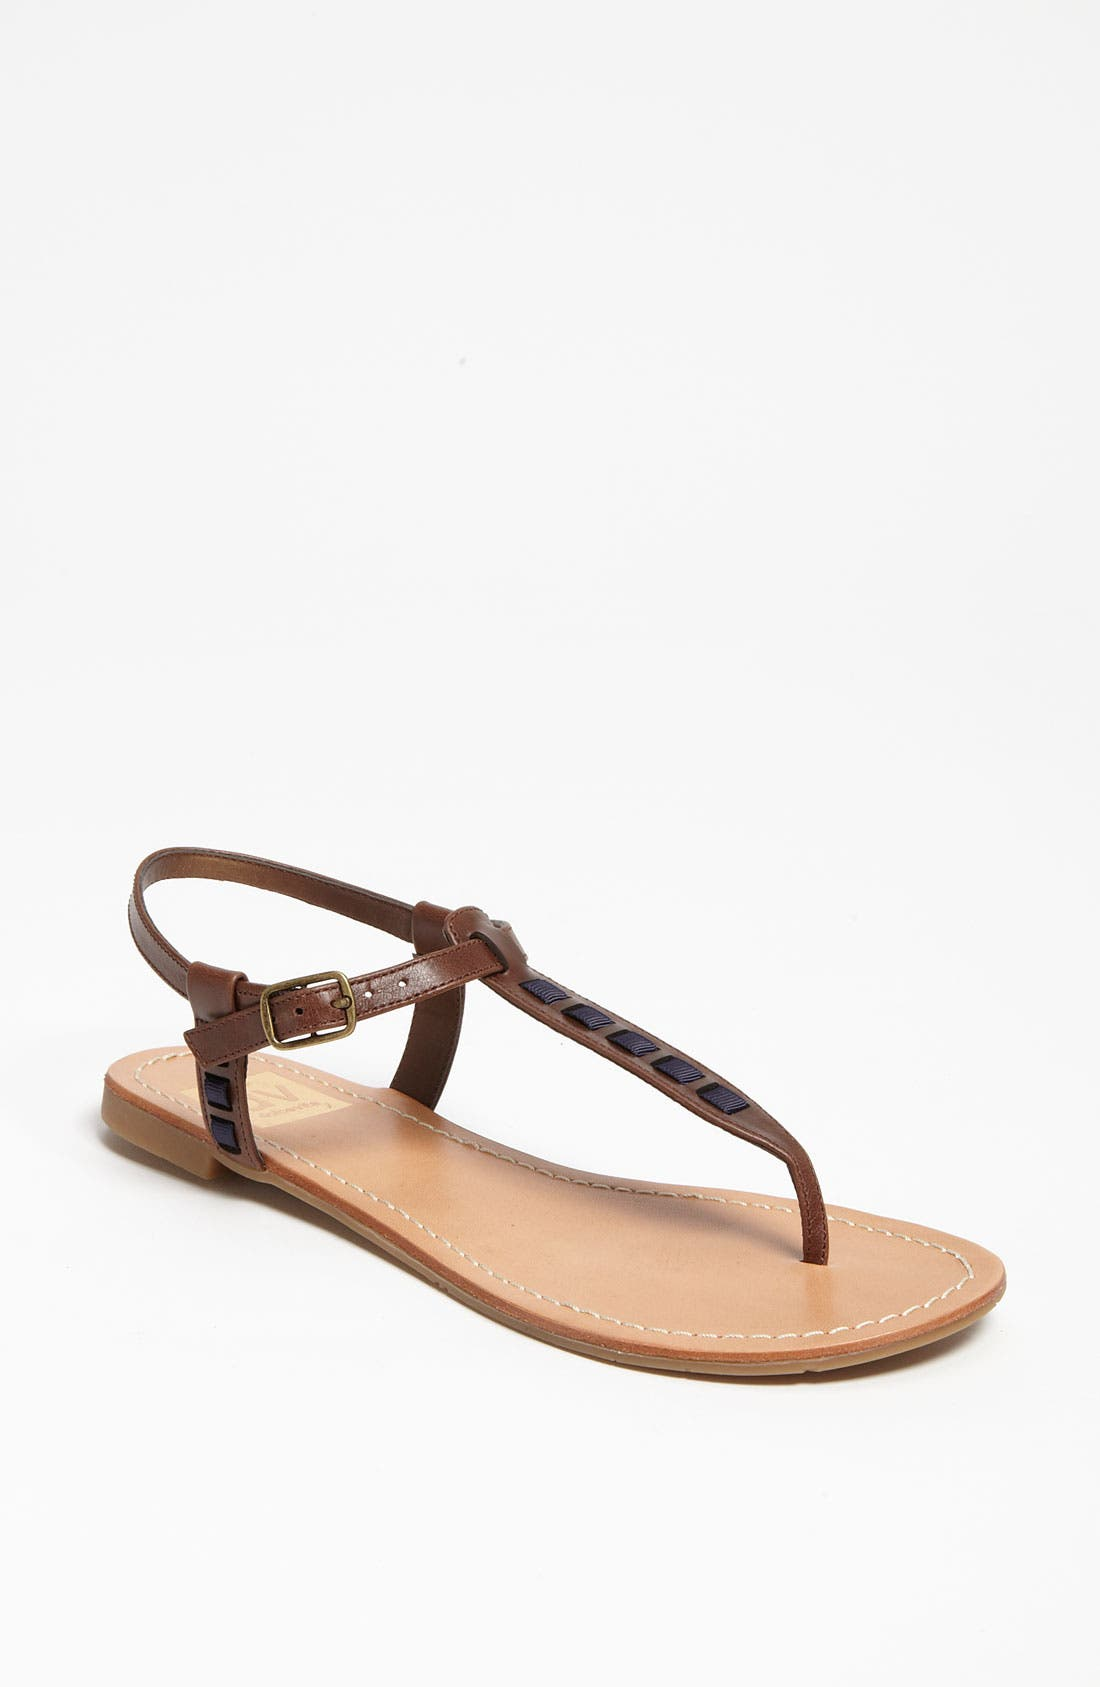 Alternate Image 1 Selected - DV by Dolce Vita 'Dawn' Sandal